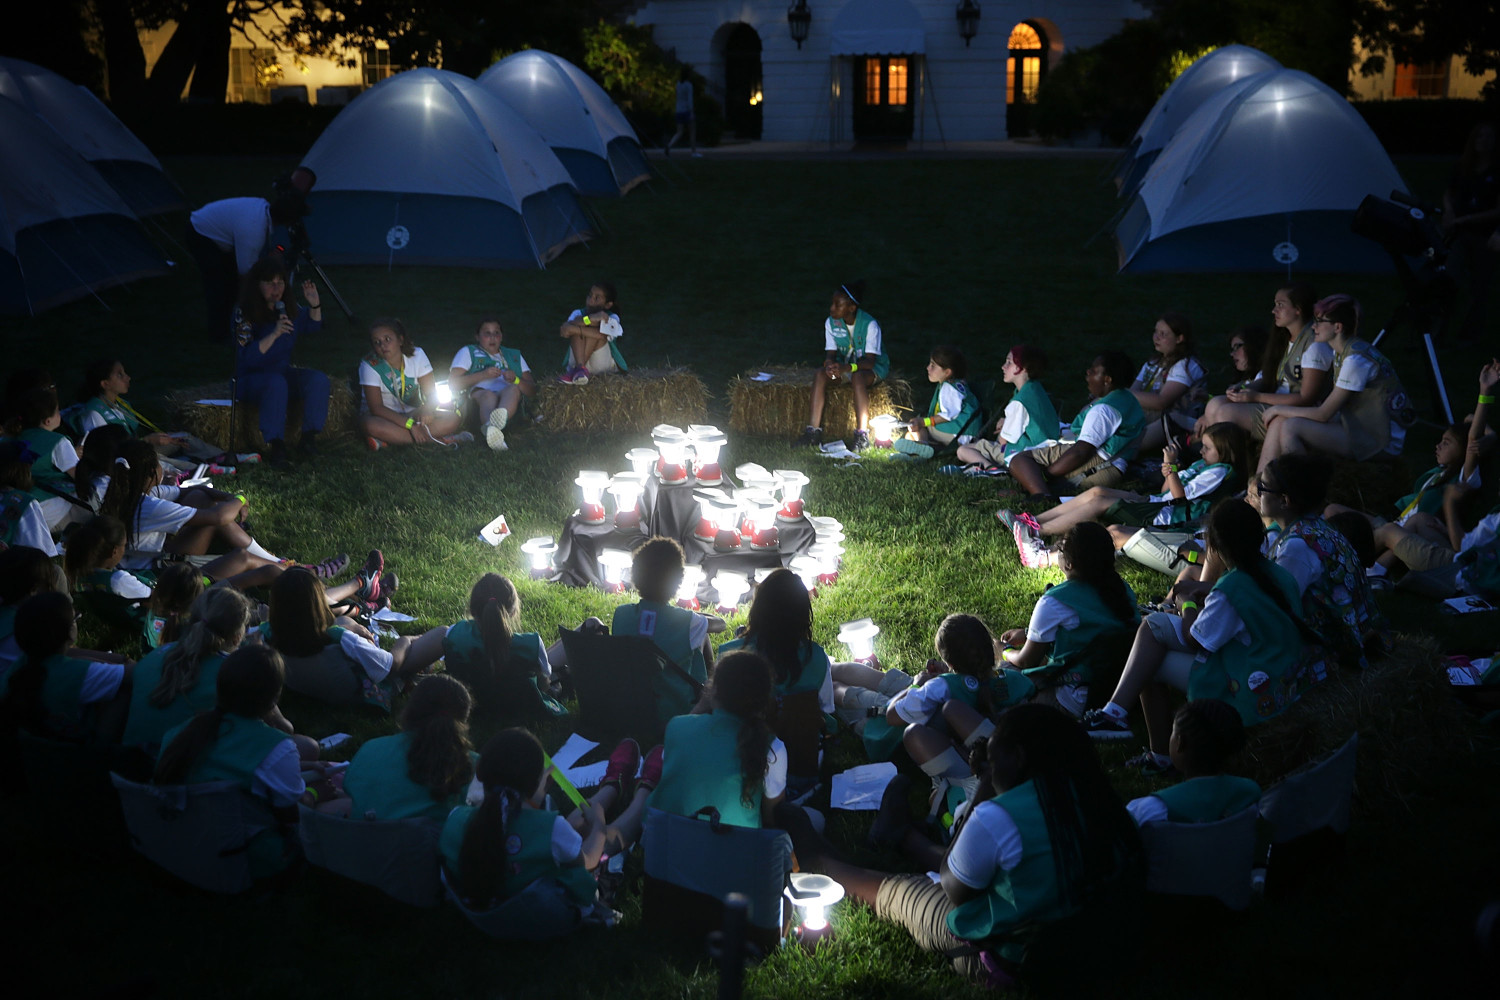 Girl scouts raise over $330k (Image: Alex Wong/Getty Images - used under licence)